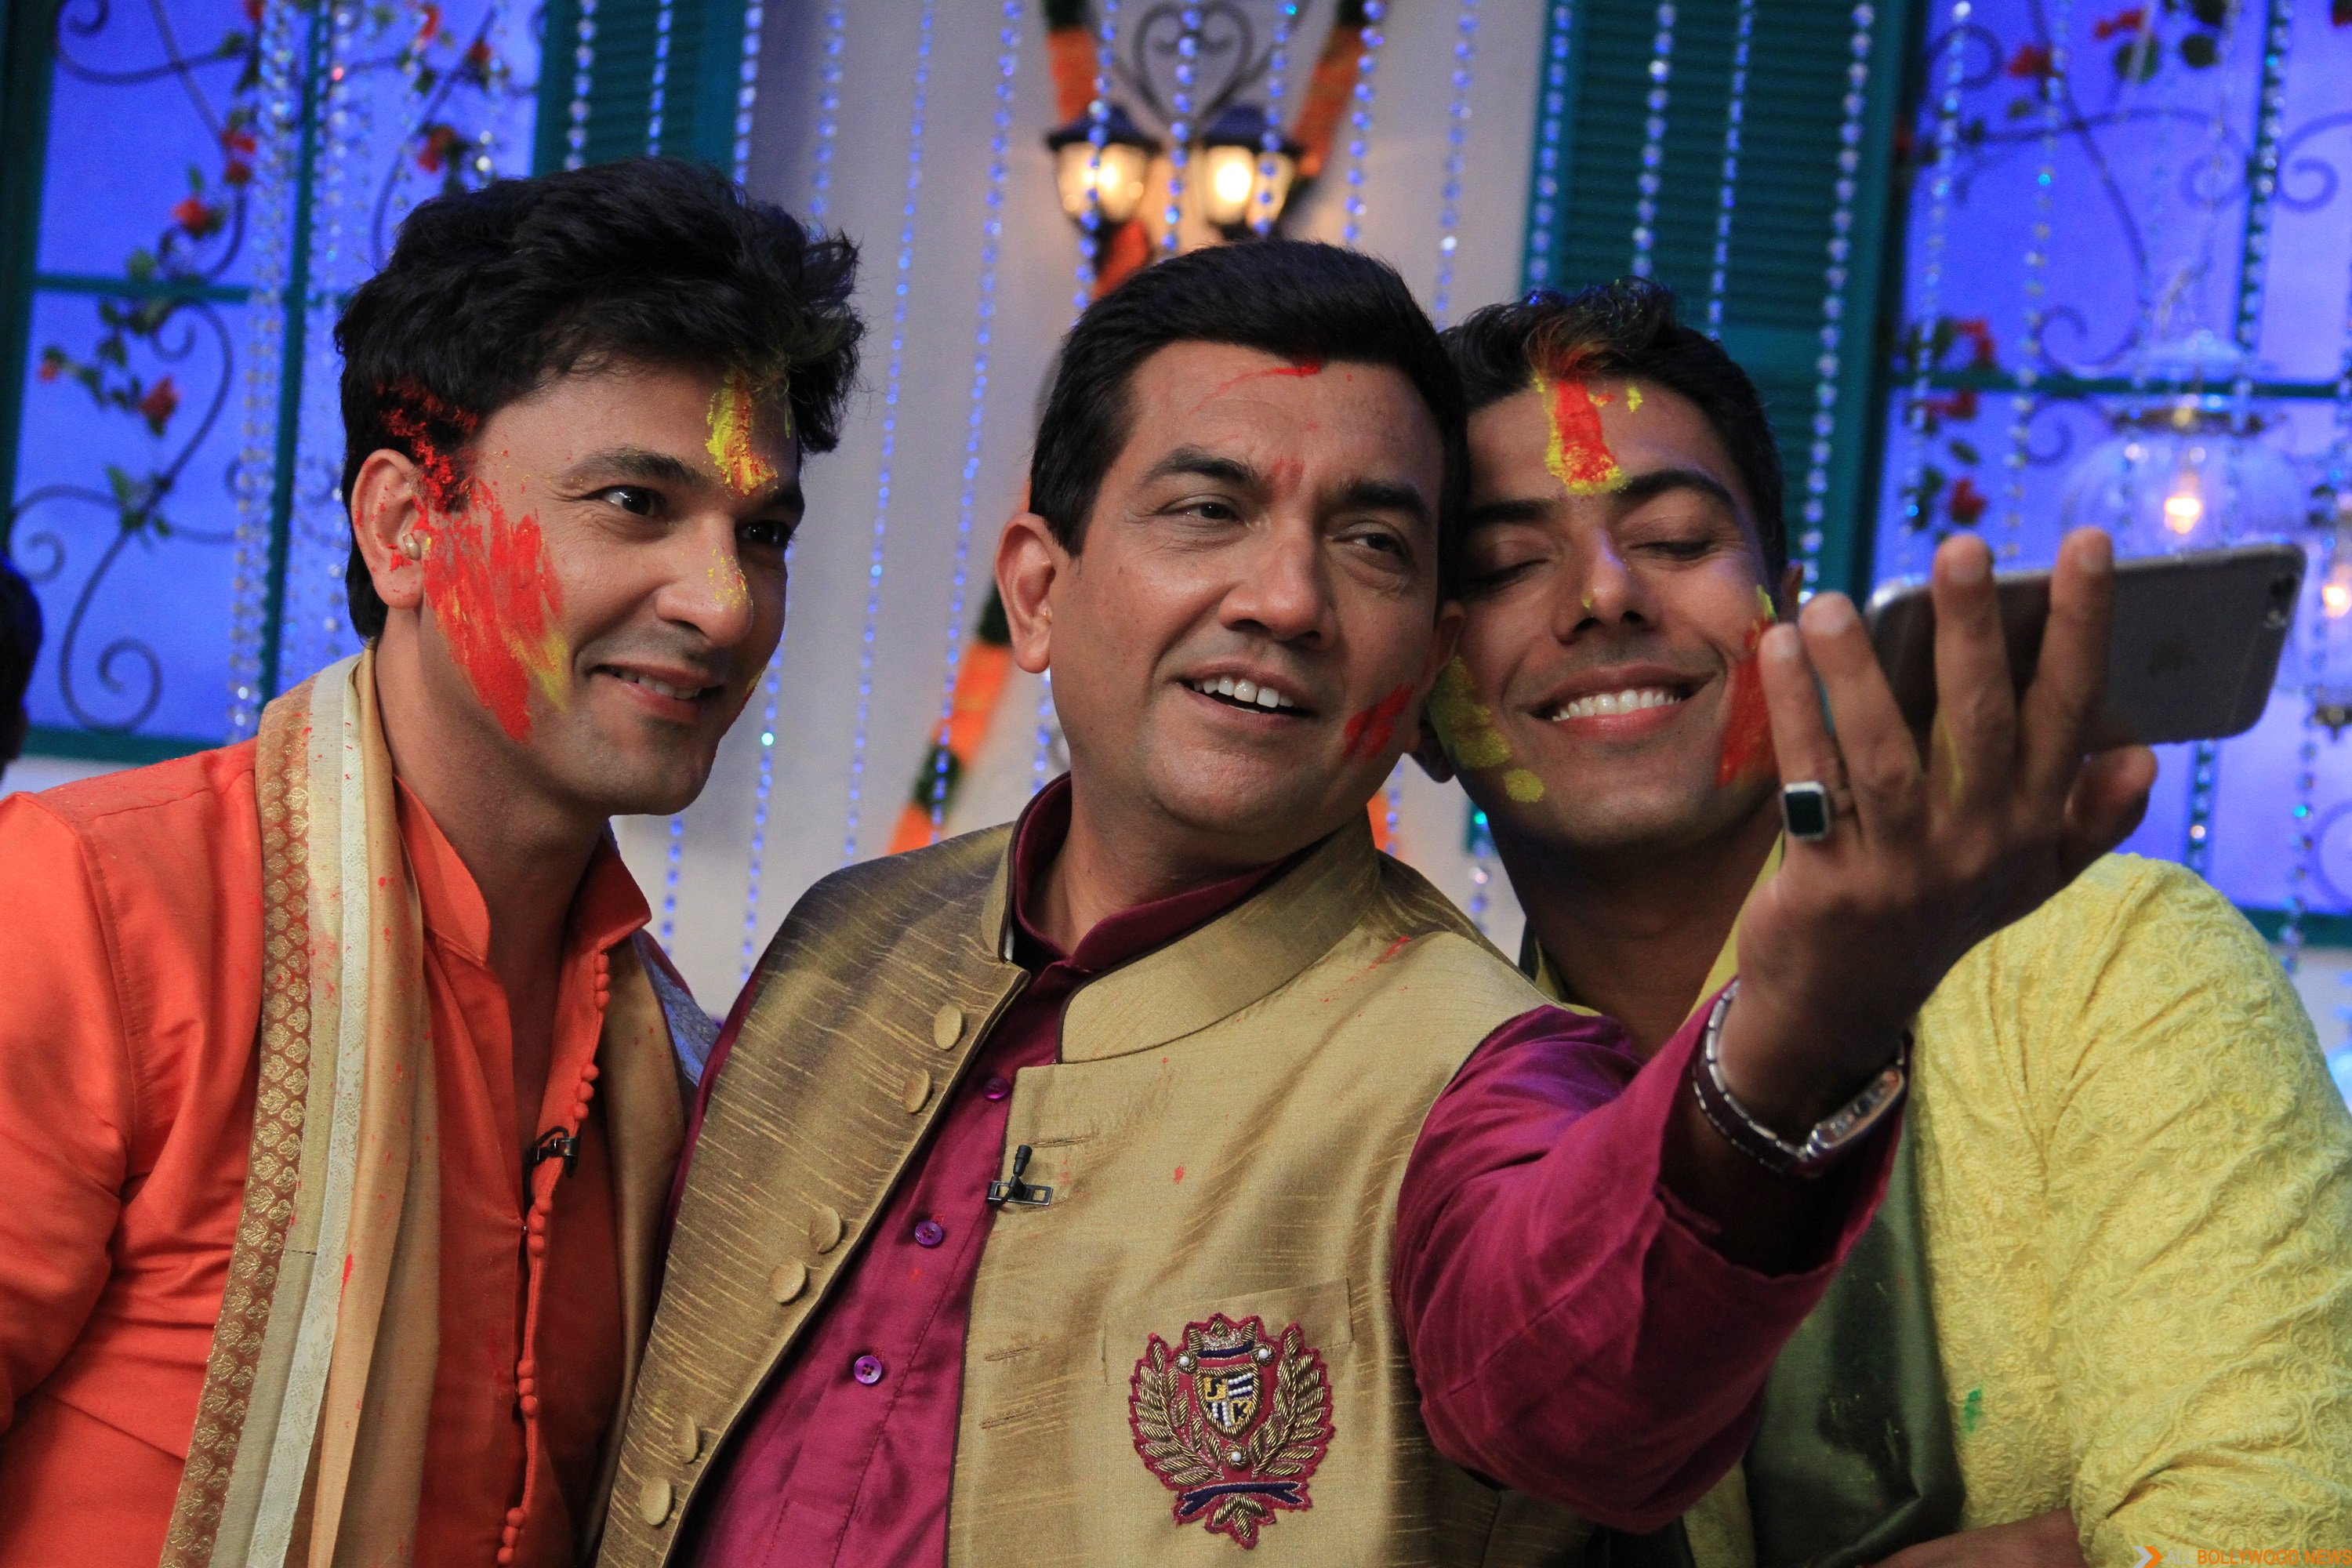 MasterChef India-4 judges in a Holi selfie moment